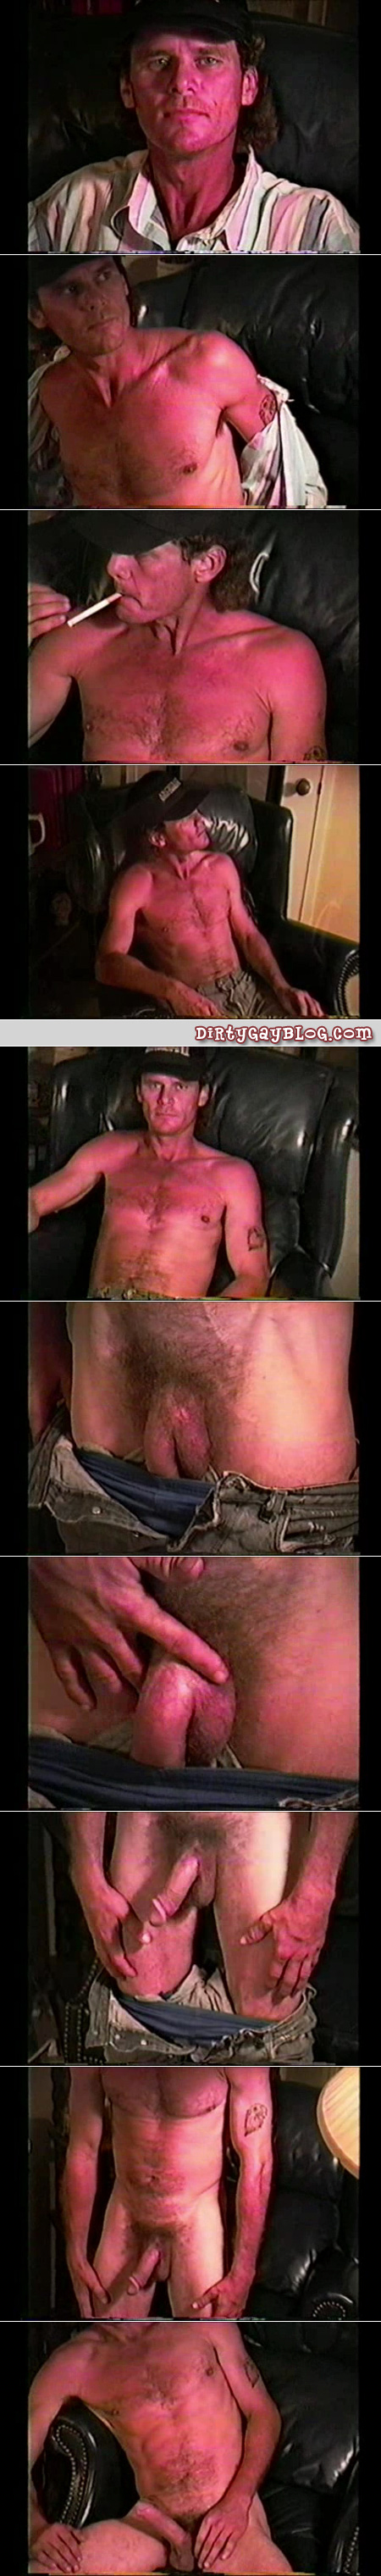 Hairy older blue collar man jacking off in private.